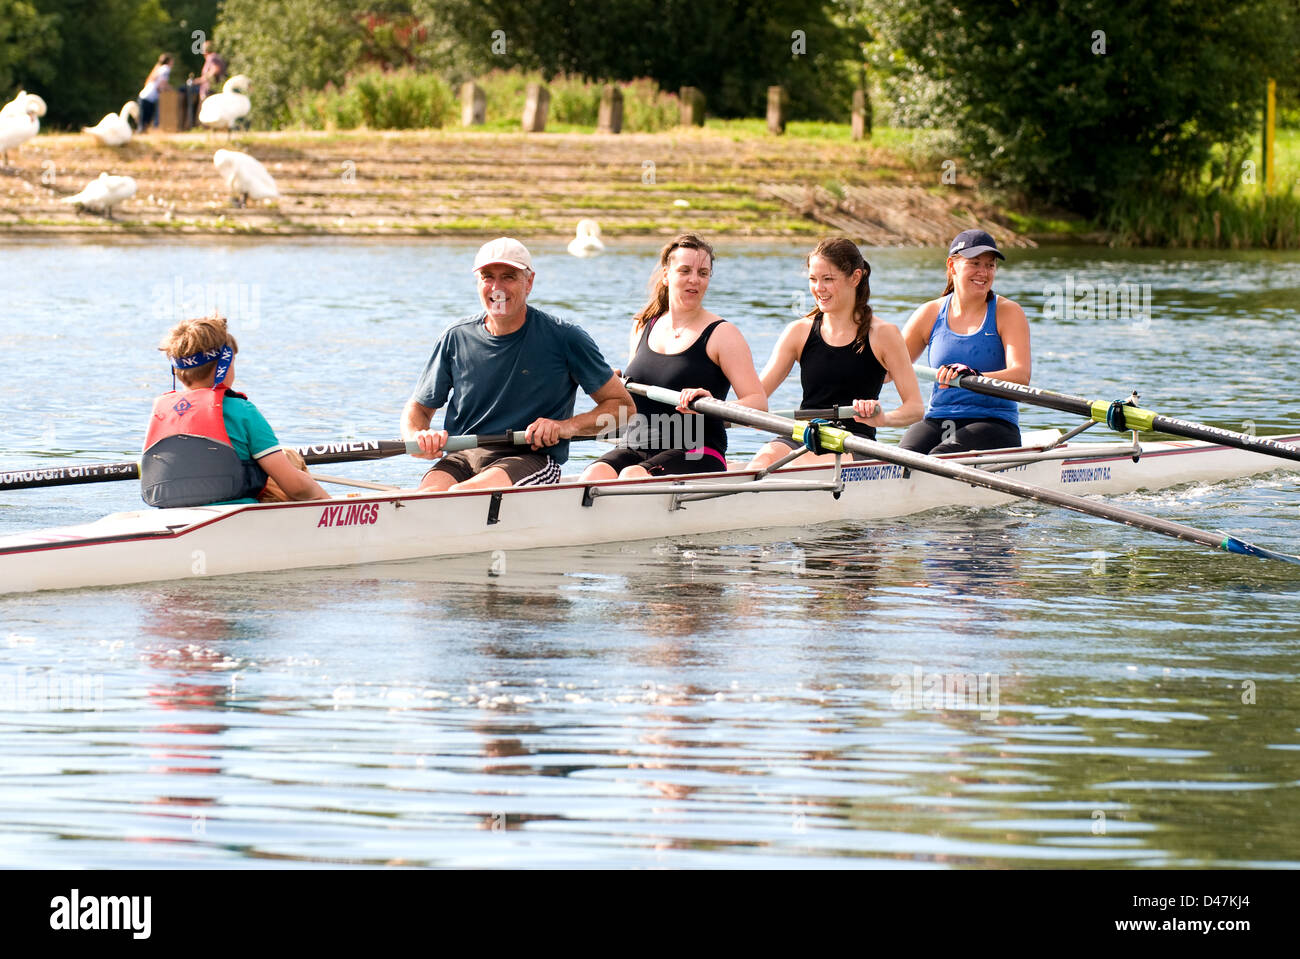 Mixed coxed four out on a training row - coach is in the stroke seat. - Stock Image